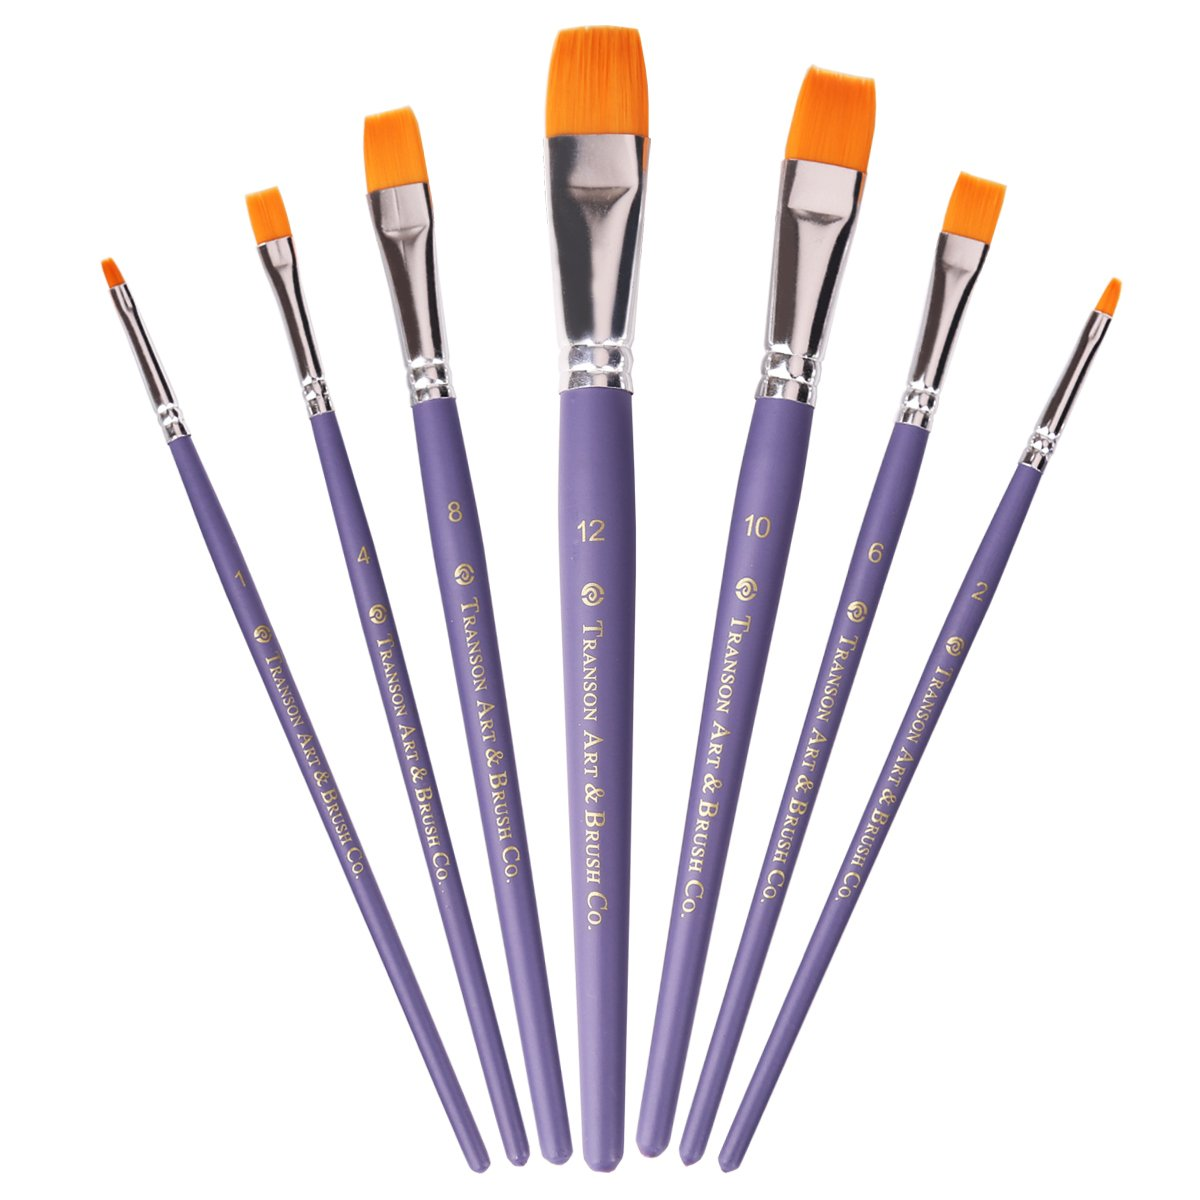 Transon Paint Brushes Set 7pcs for Miniature, Acrylic, Model, Oil, Gouache and Body Painting Suitable for Artist, Students&Kids